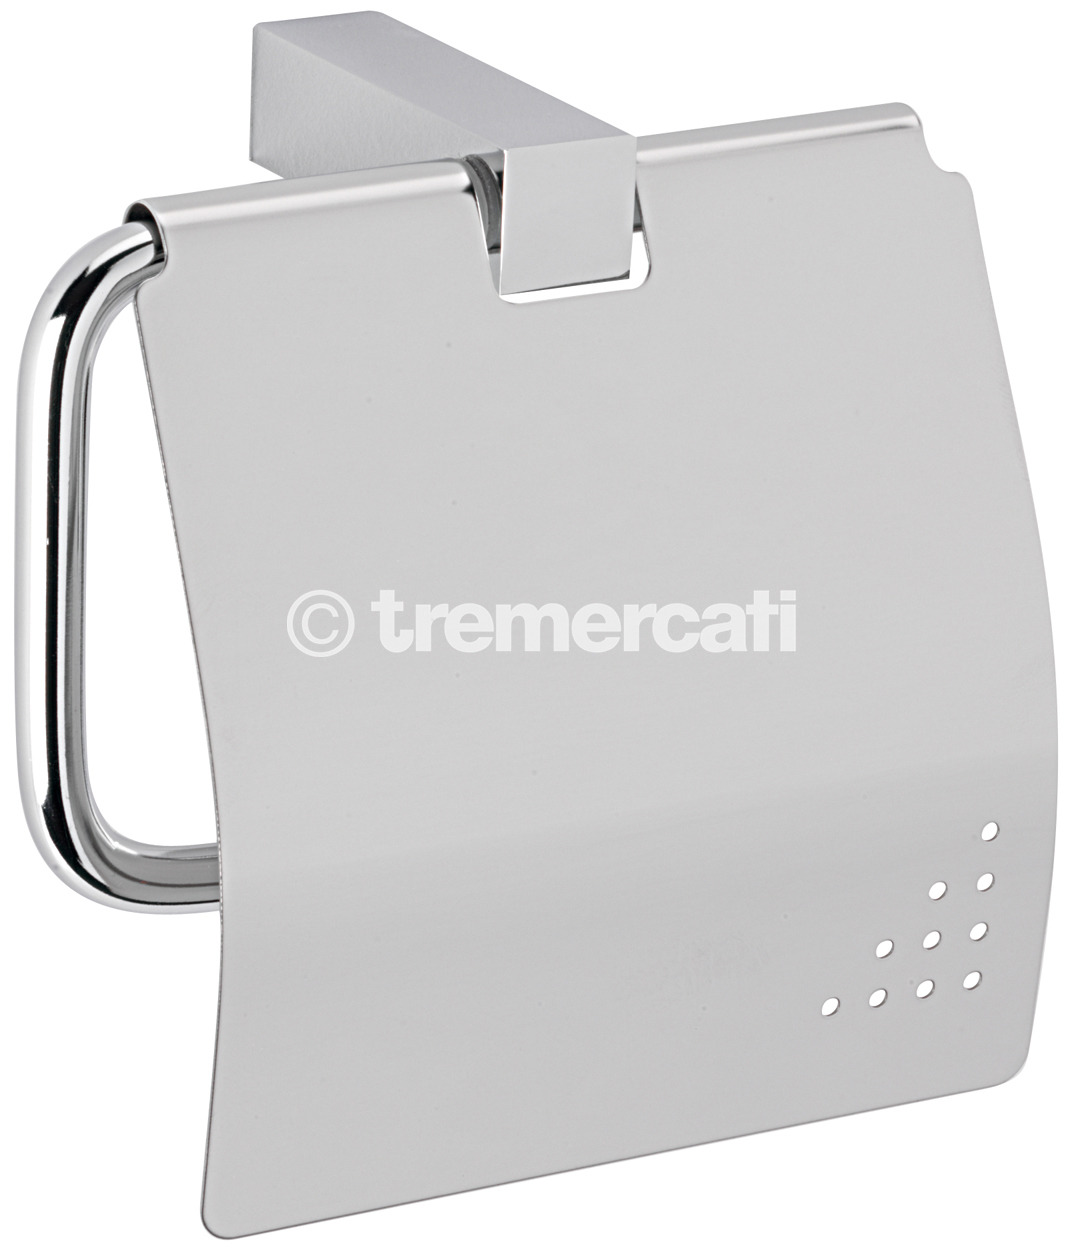 TRE MERCATI TURN ME ON COVERED TOILET ROLL HOLDER - CHROME PLATED